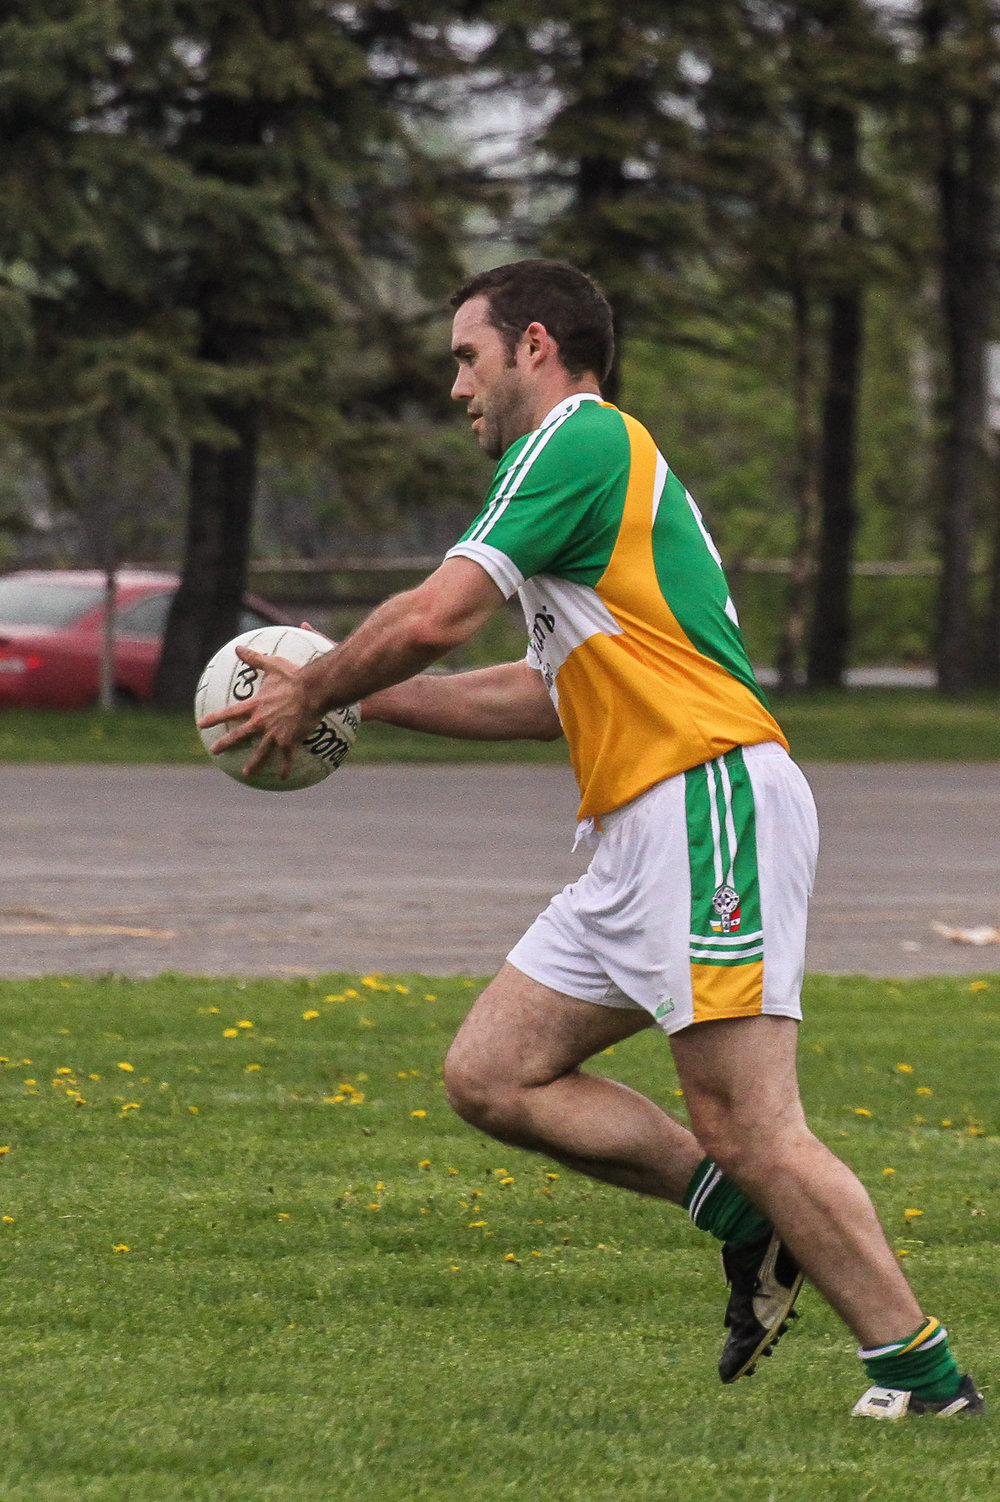 Toronto Gaels Gaelic Football Club - Montreal May Tournament 2015 - ShamrocksvsGaels(10of30).jpg